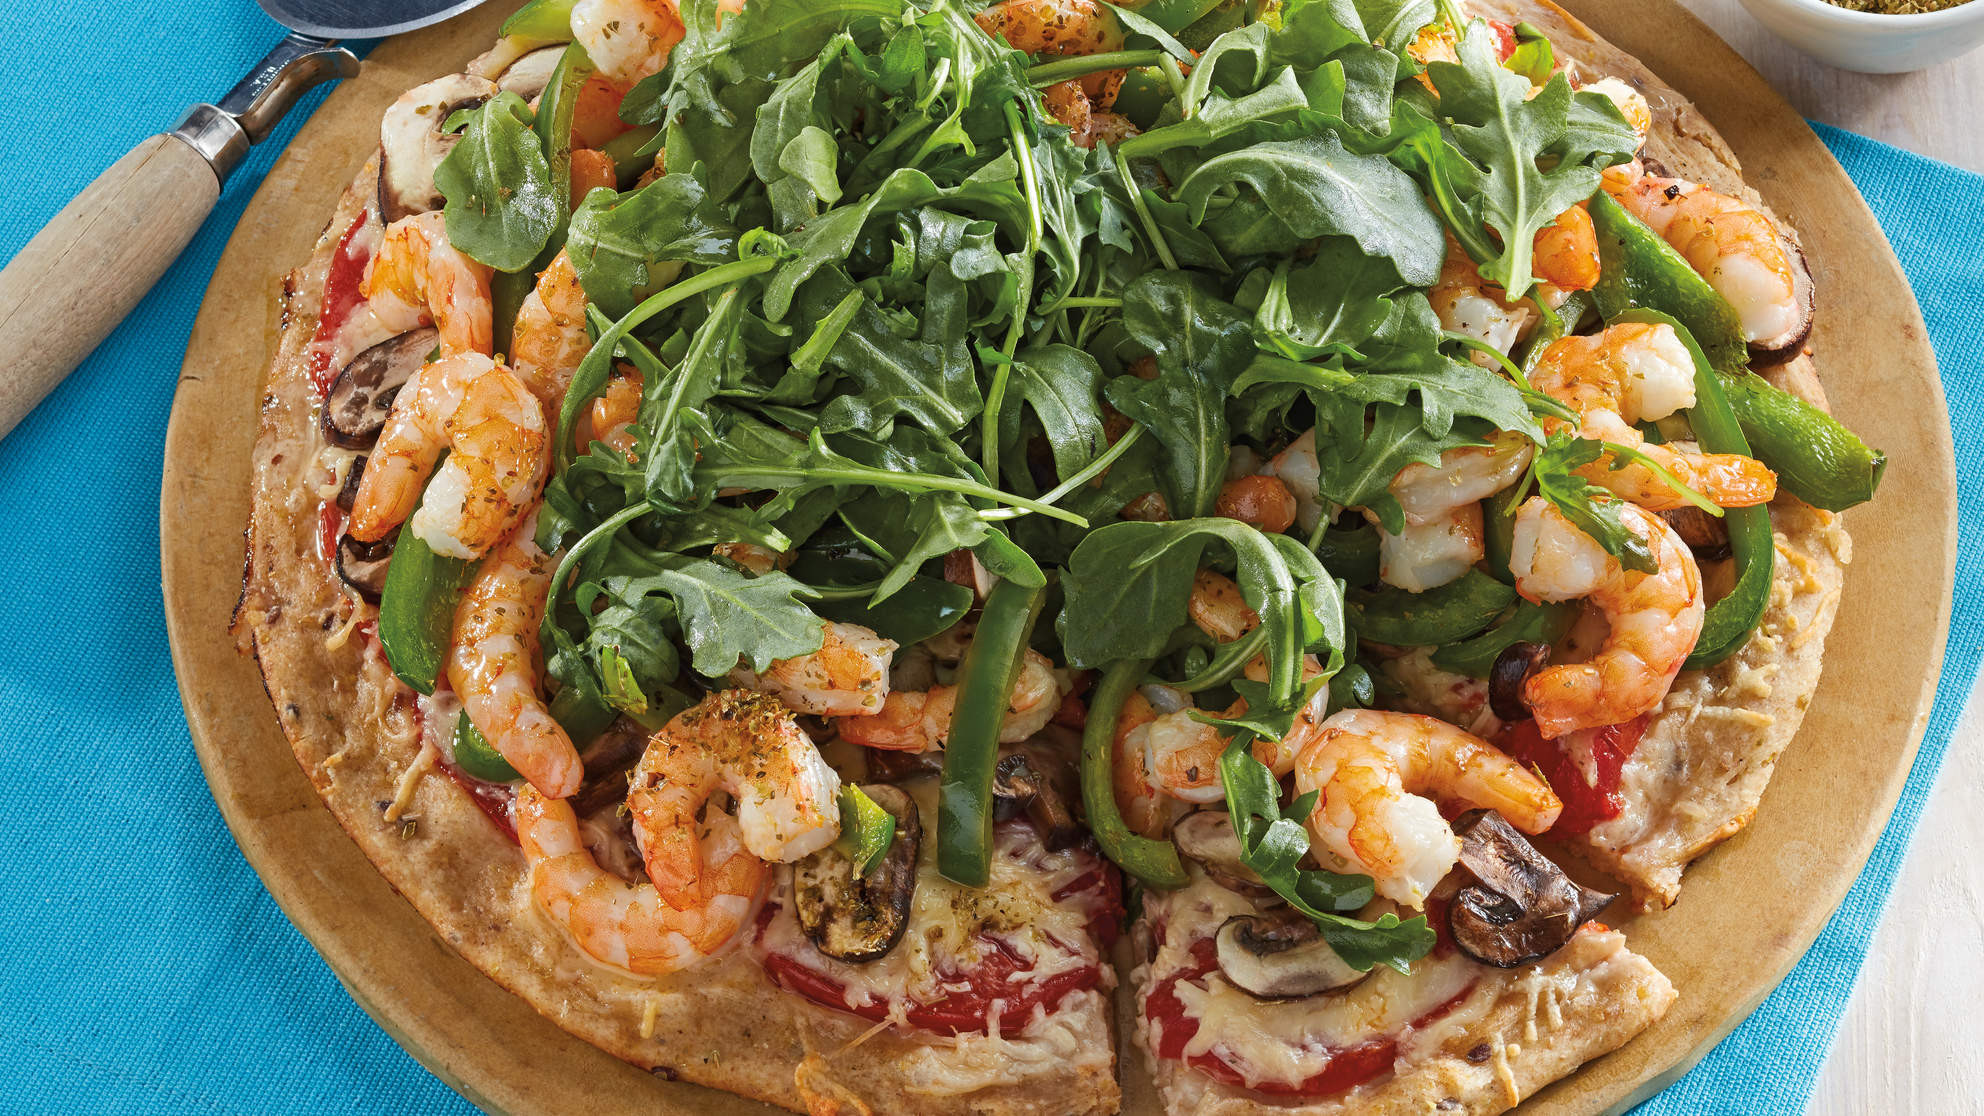 Shrimp and Mushroom Pizza